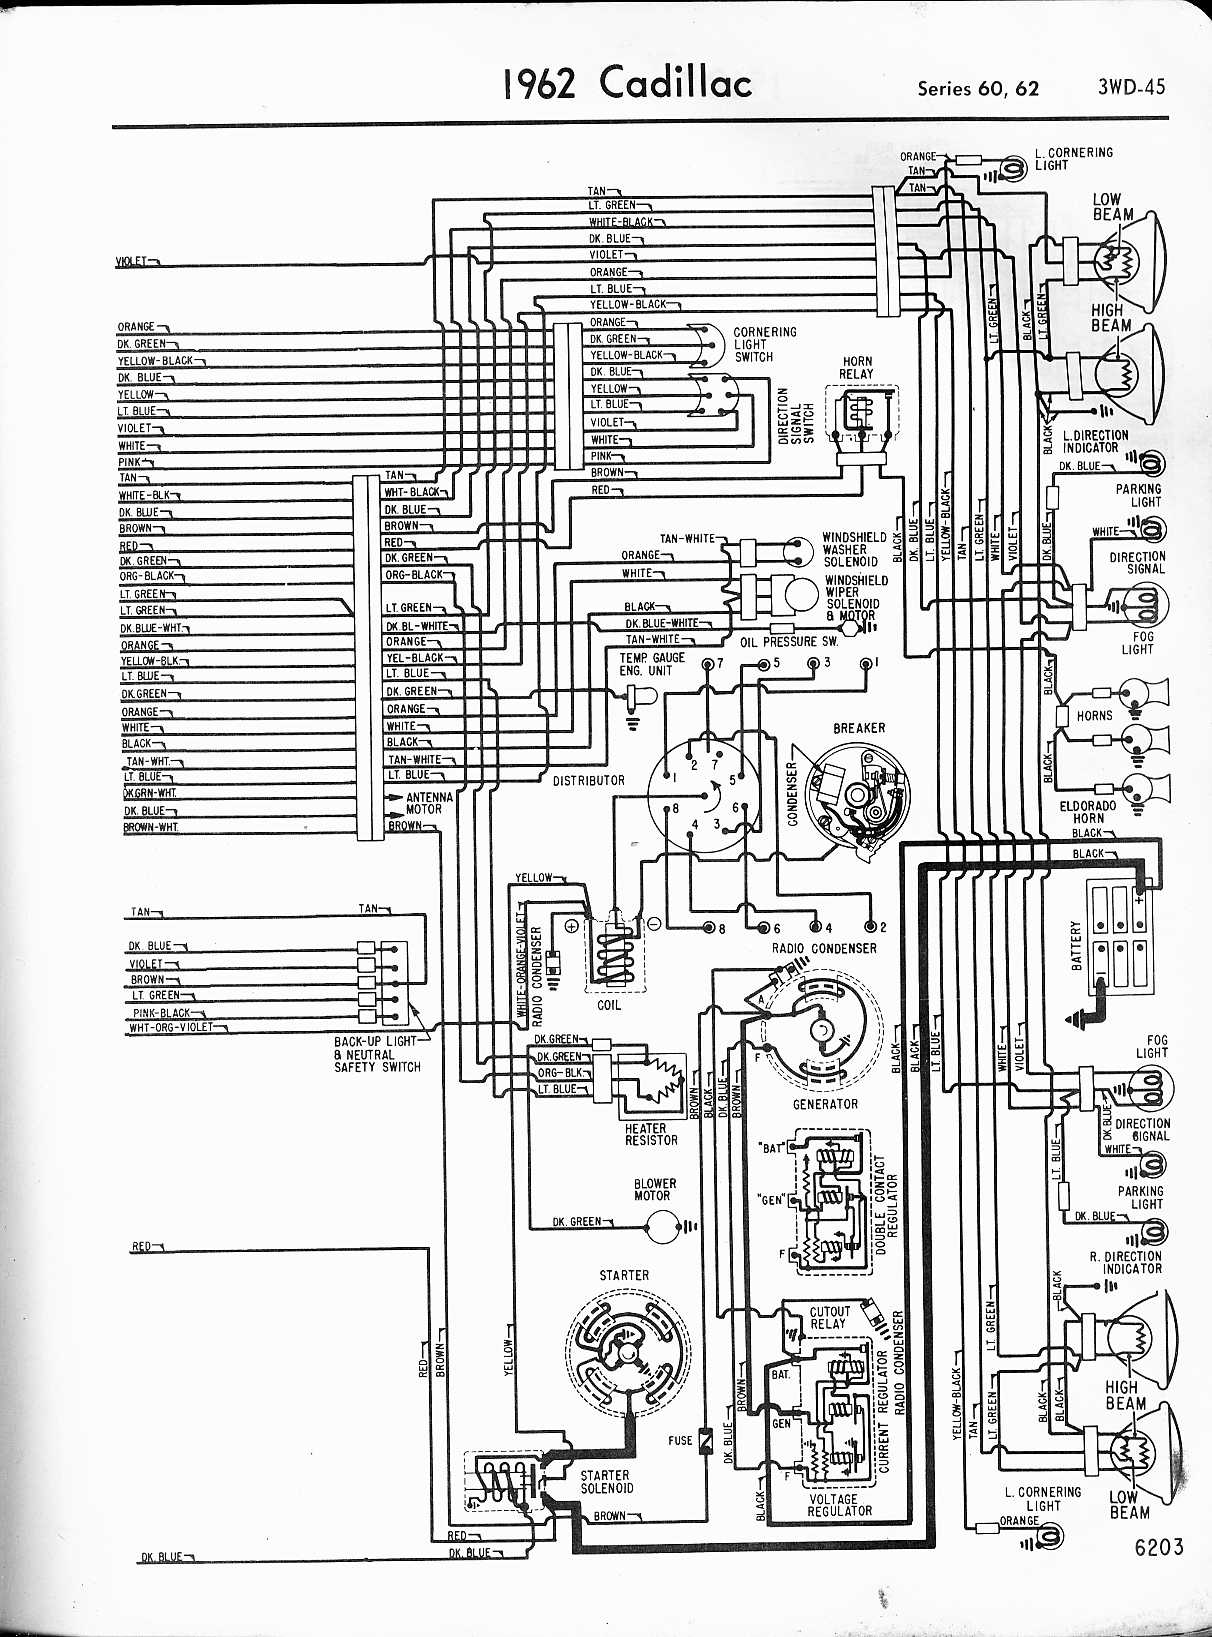 wiring diagram 1955 cadillac example electrical wiring diagram u2022 rh cranejapan co 68 Corvette Wiring Diagram Automotive Wiring Diagrams